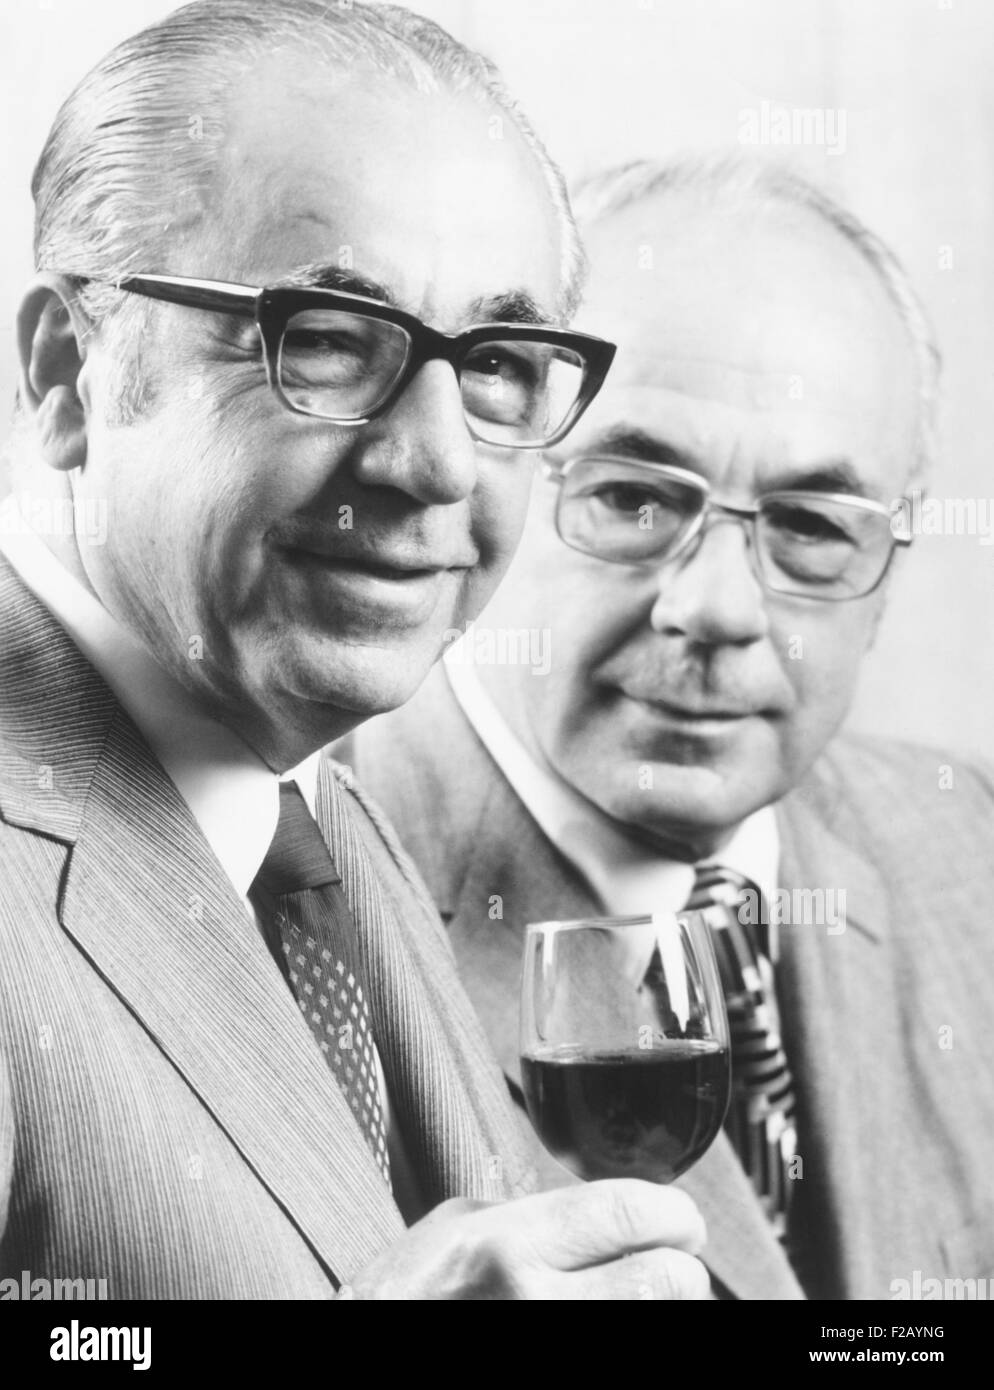 Ernest and Julio Gallo, ca. 1975. Brothers who founded the E.&J. Gallo Winery in 1933, when Prohibition ended. - Stock Image